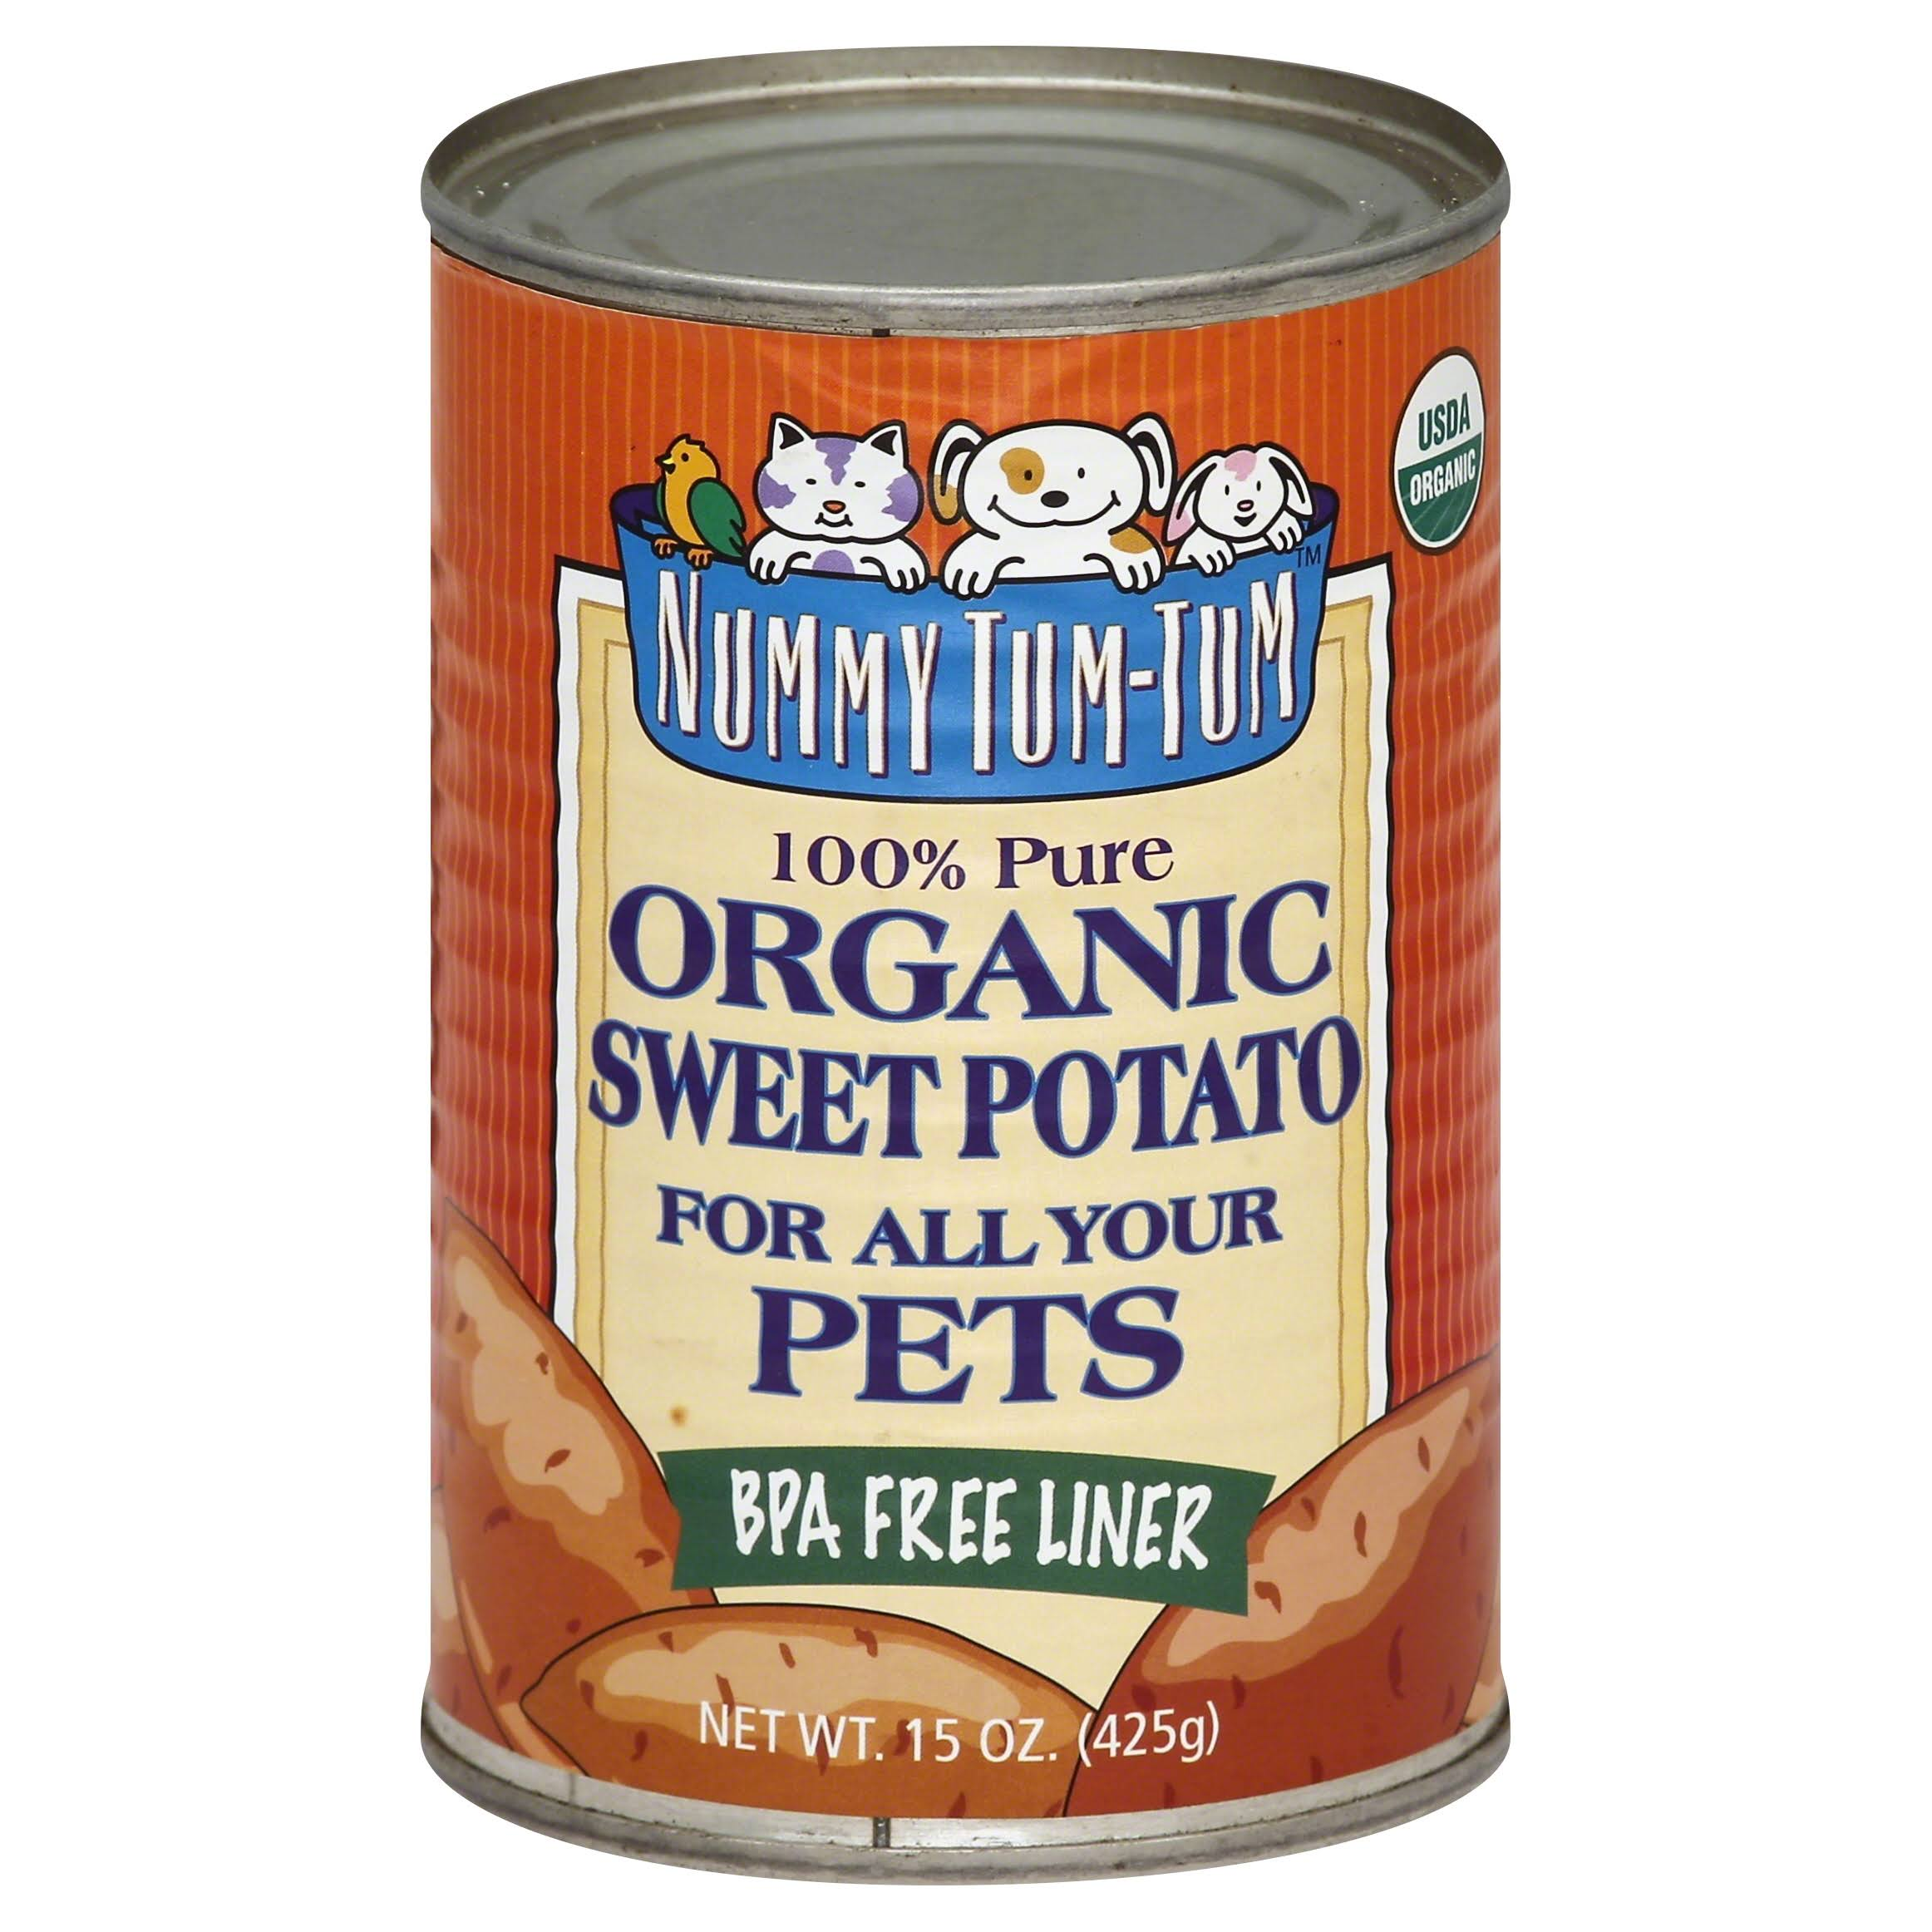 Nummy Tum Tum Pure Sweet Potato for Dogs - 425g